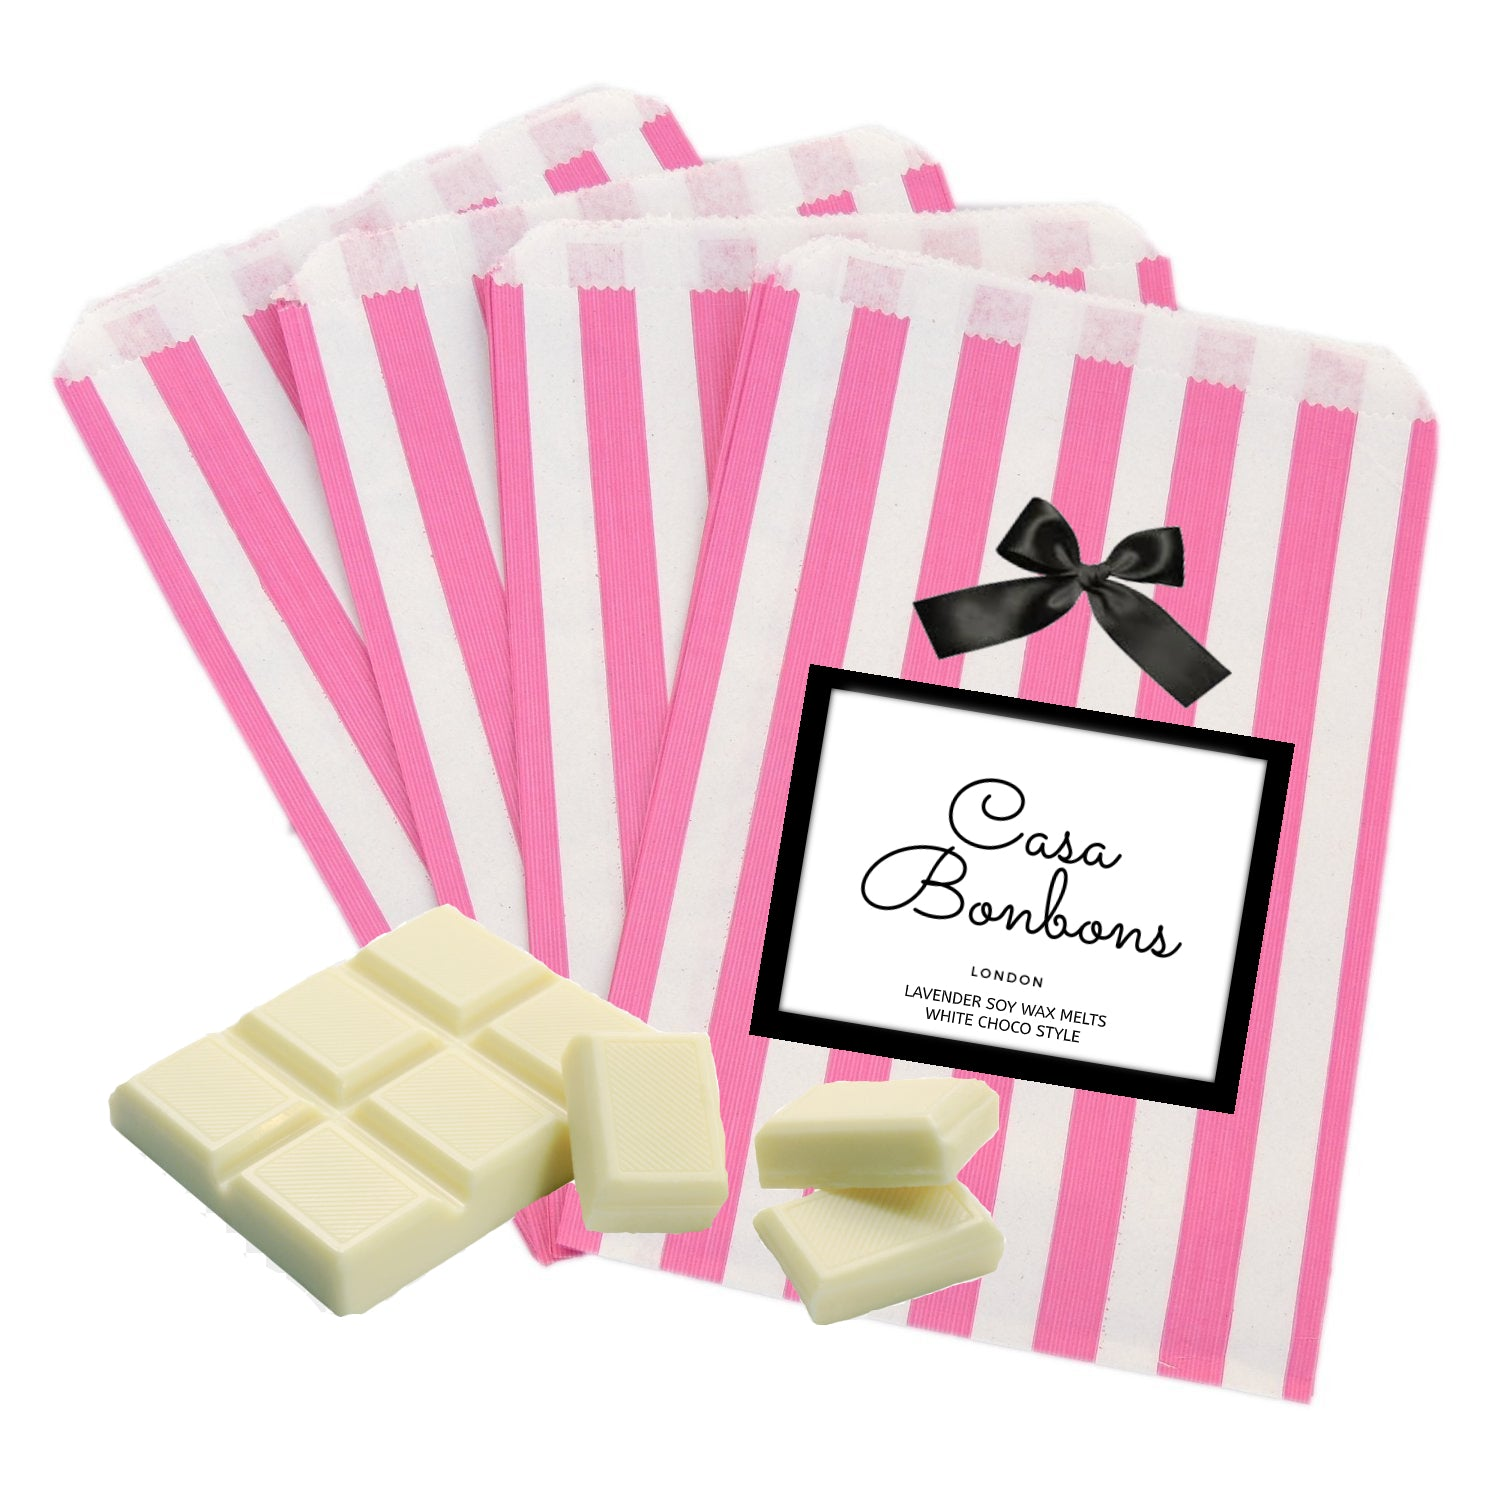 Lavender gentle scented white chocolate style Soy Wax Melts, PRE-ORDER delivery around 15th of December - natoorio